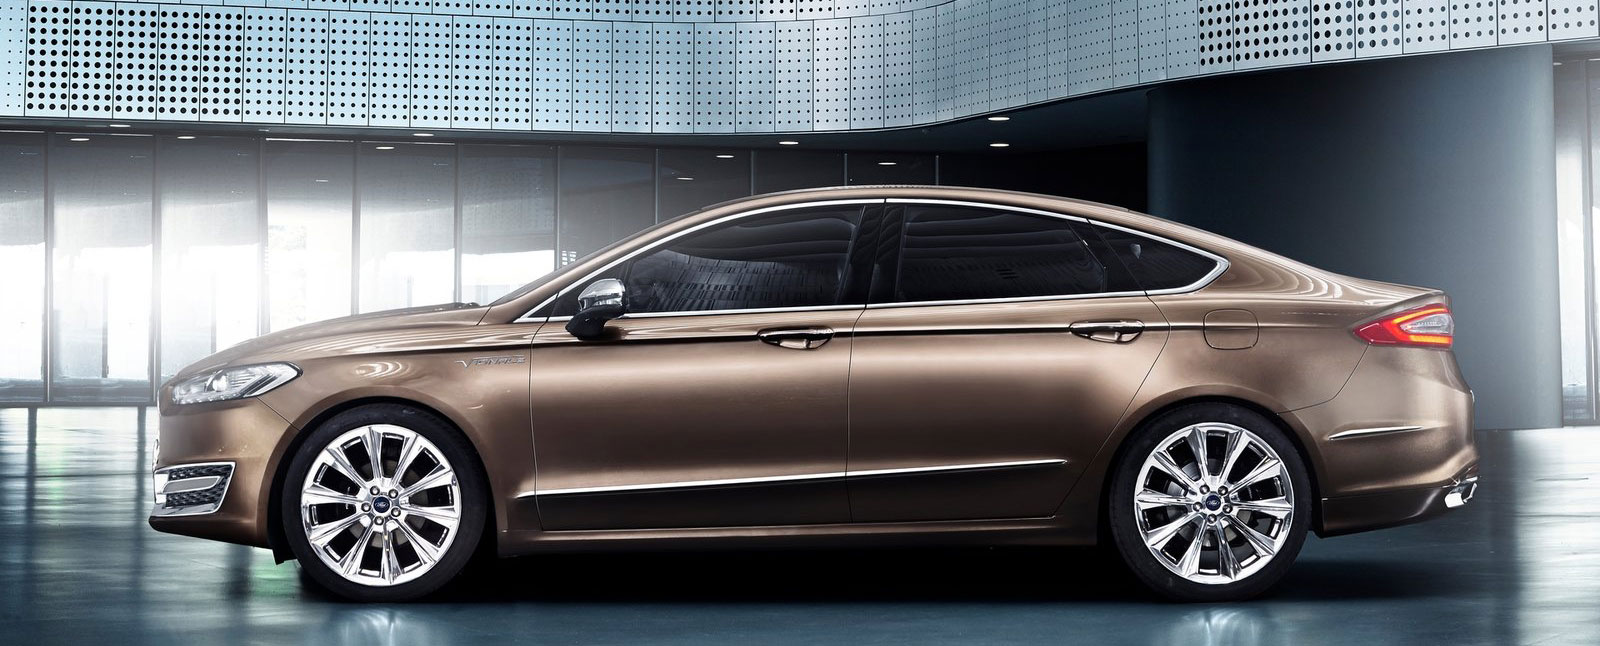 Ford Mondeo Vignale Previews New Luxury Sub Brand Image 197482